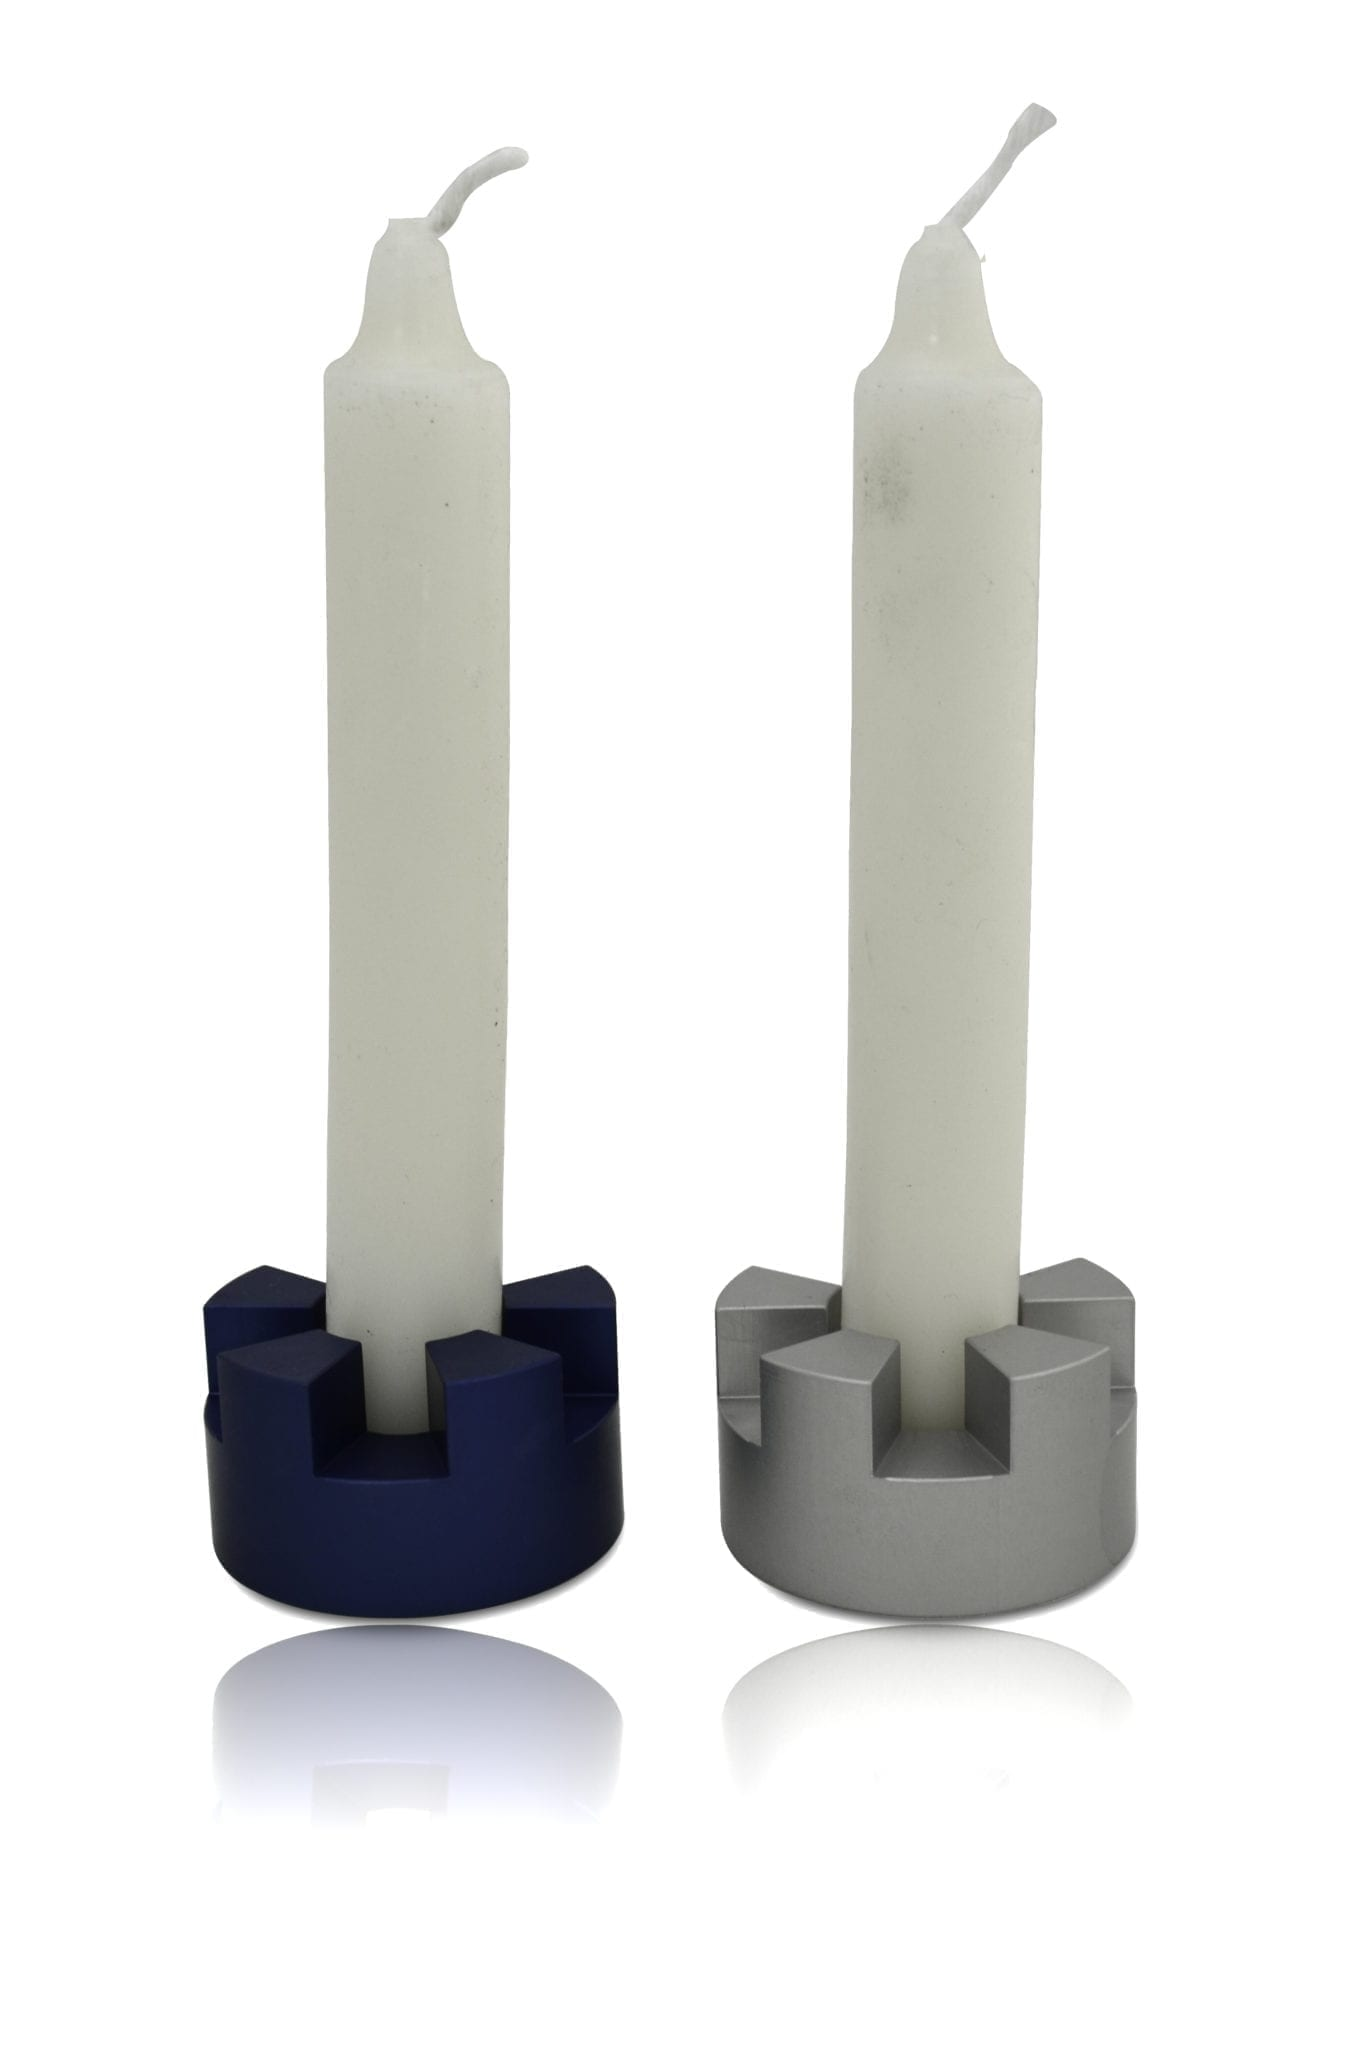 Mini traveling Jerusalem inspired candlesticks, anodized aluminum Judaica made in Israel by Nadav Art